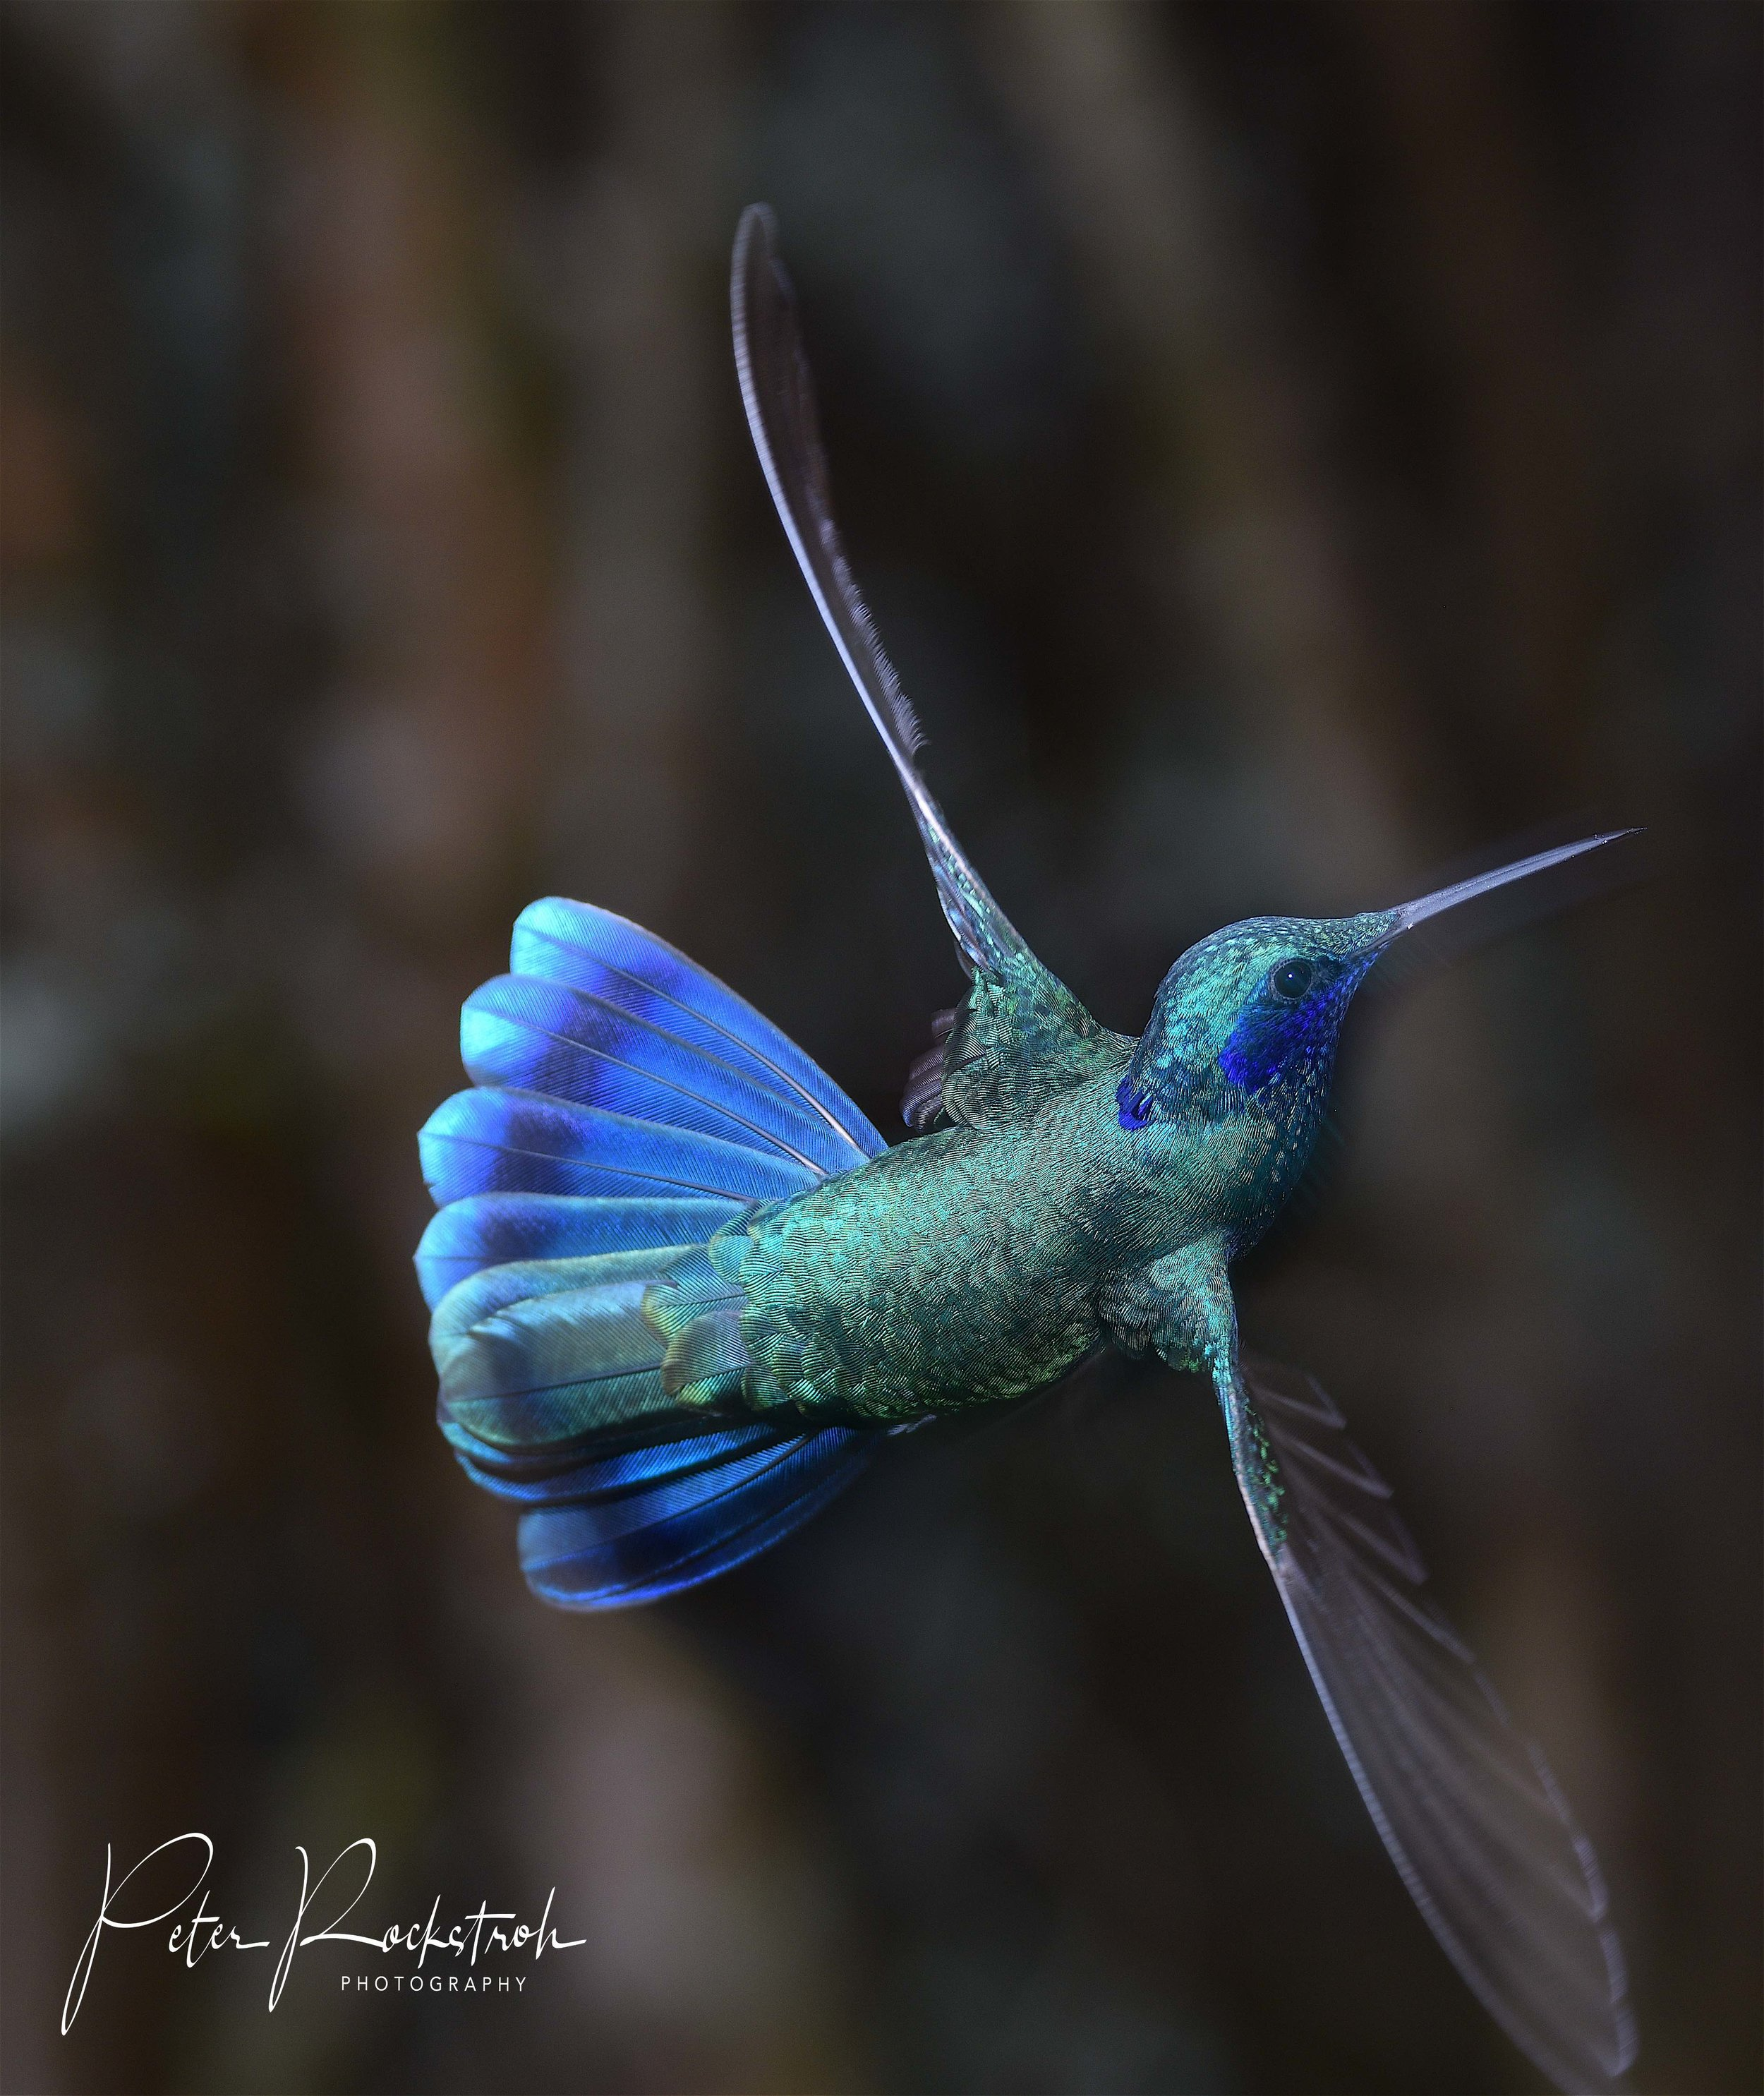 Male sparkling violet ear,  Colibri coruscans , a hyperactive little blue fellow just cruisin' through the wide world